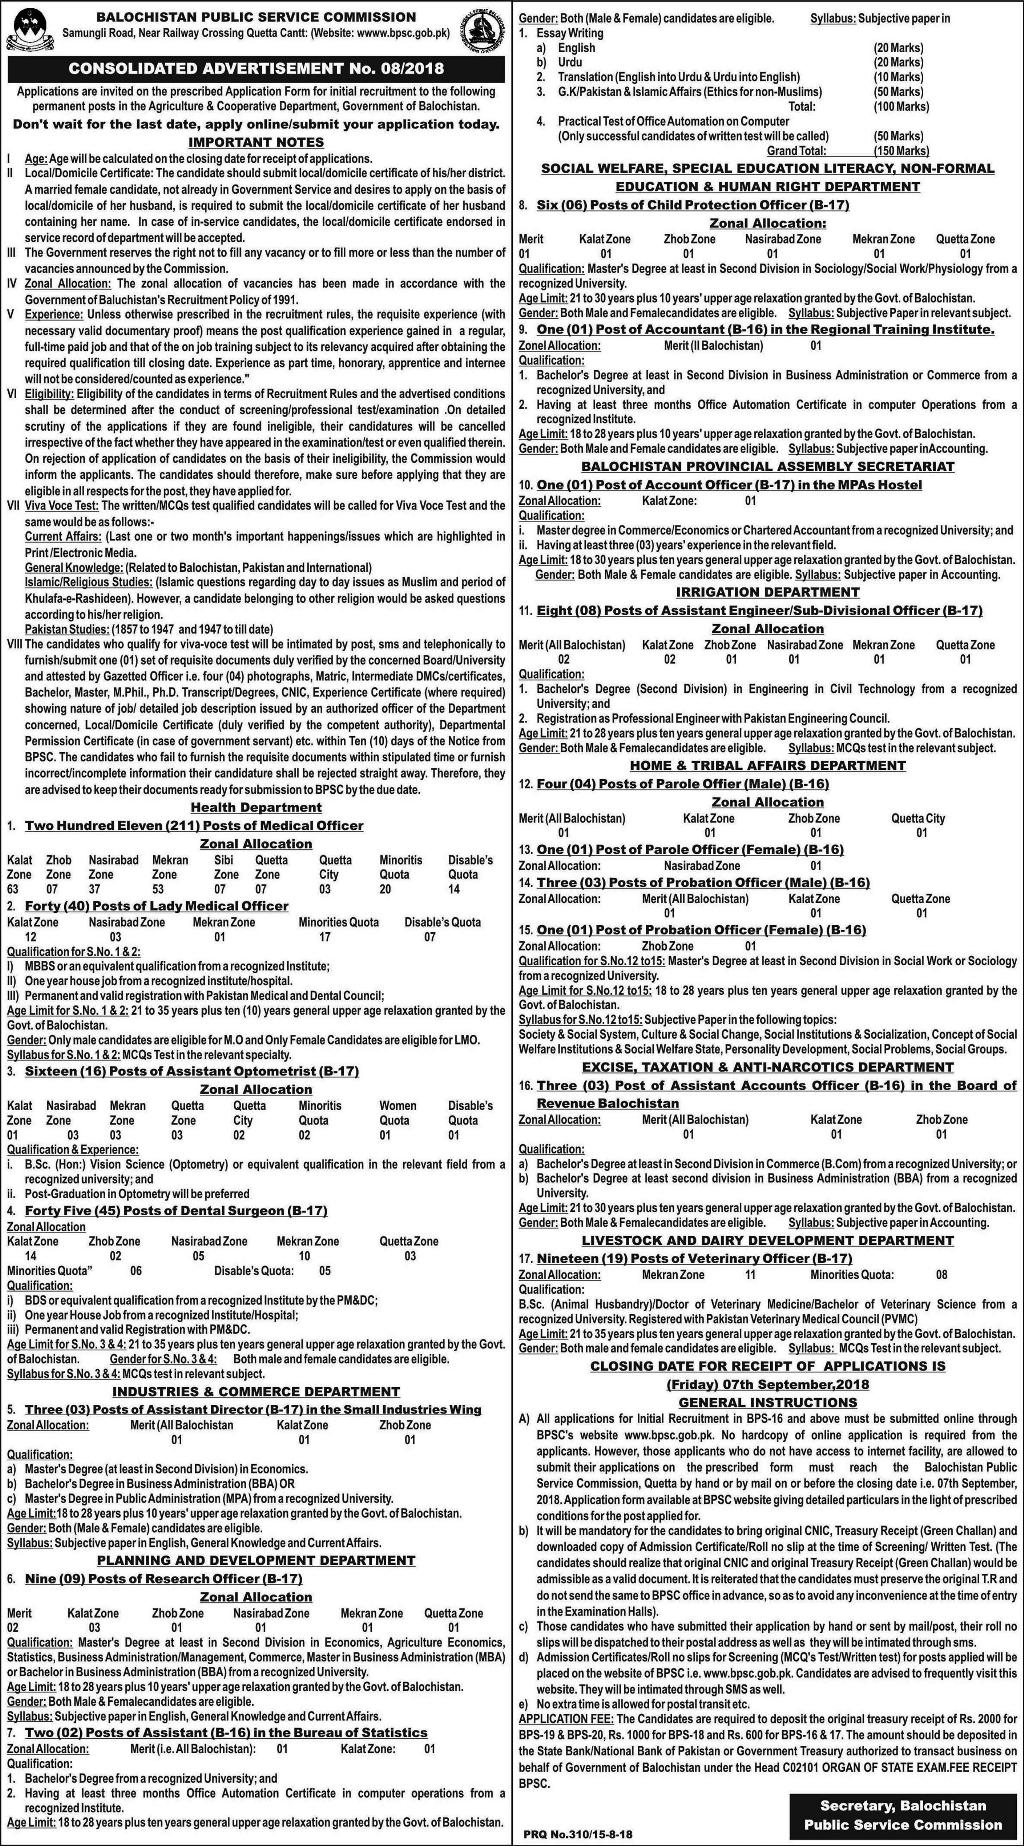 BPSC Jobs 2018 (8/2018): 373+ Posts in Multiple Departments of